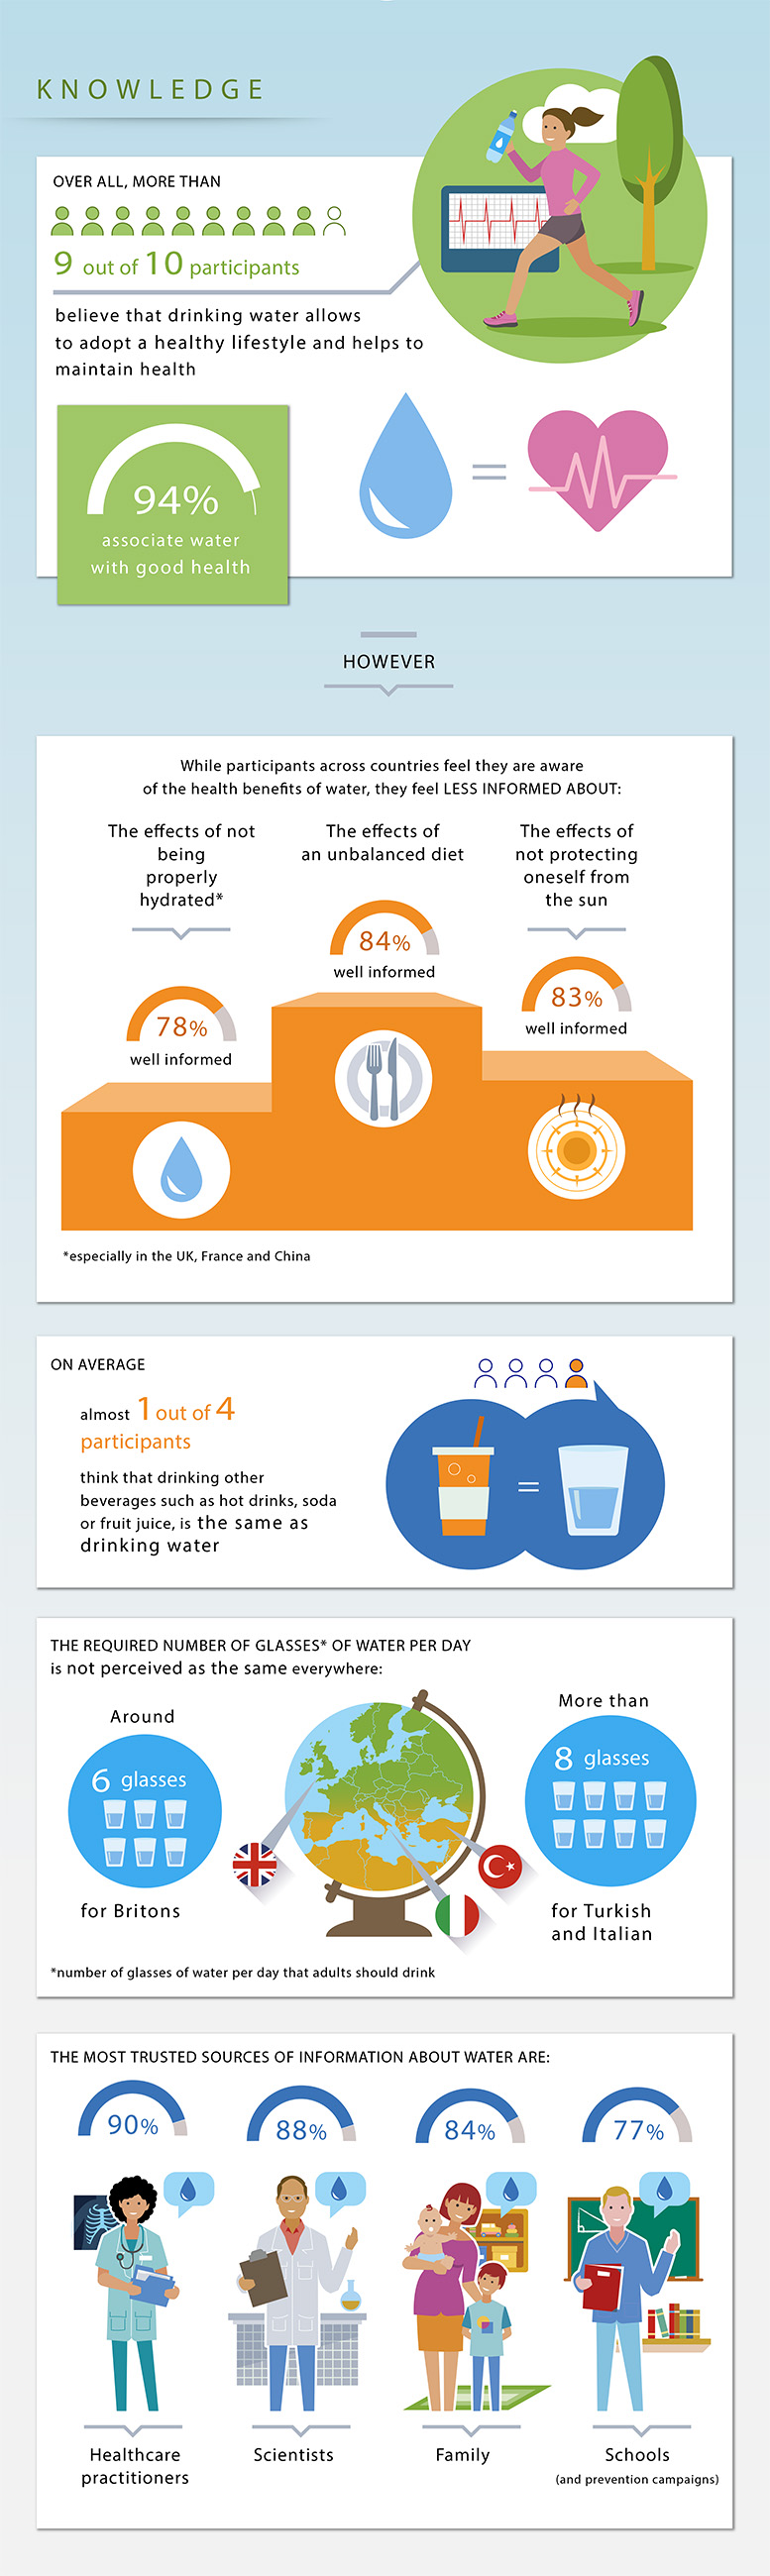 Kantar TNS Survey for Nestle Waters on Water Consumption